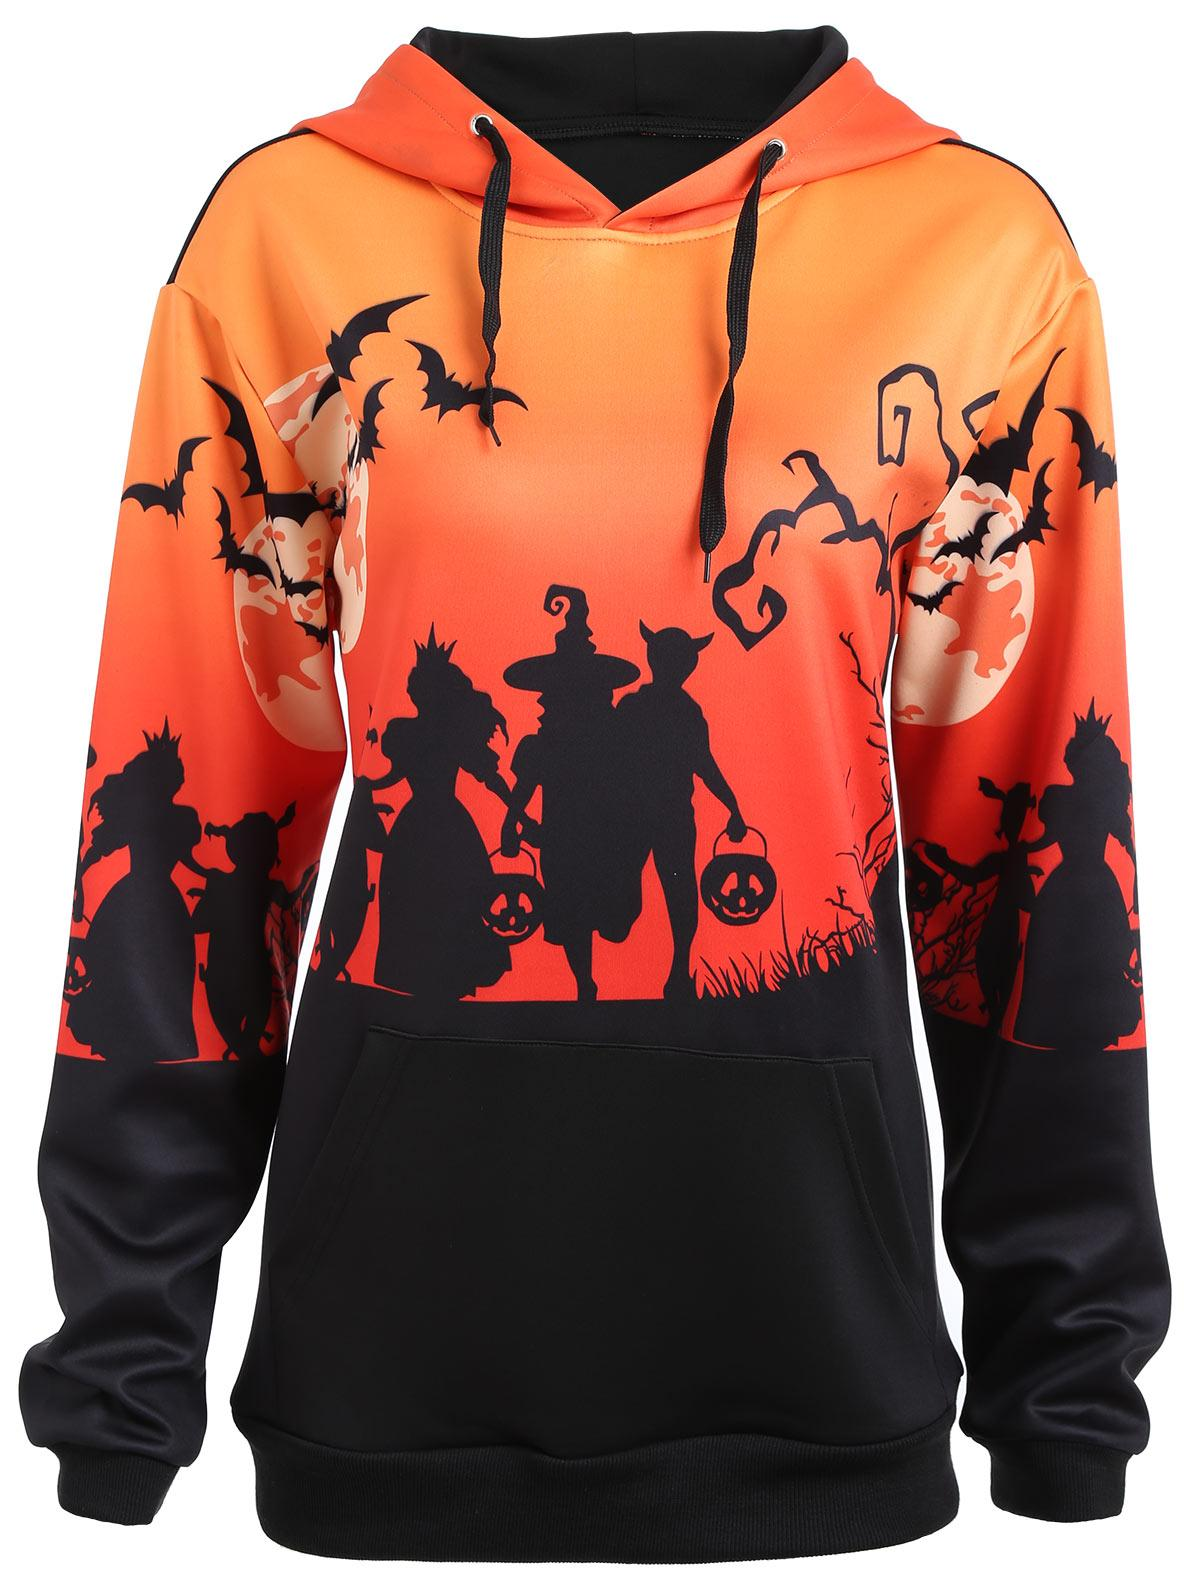 2018 wholesale plus size halloween moon bat print hoodie with pocket winter warm drawstring color block hooded sweatshirt pullover from tengdingskirt